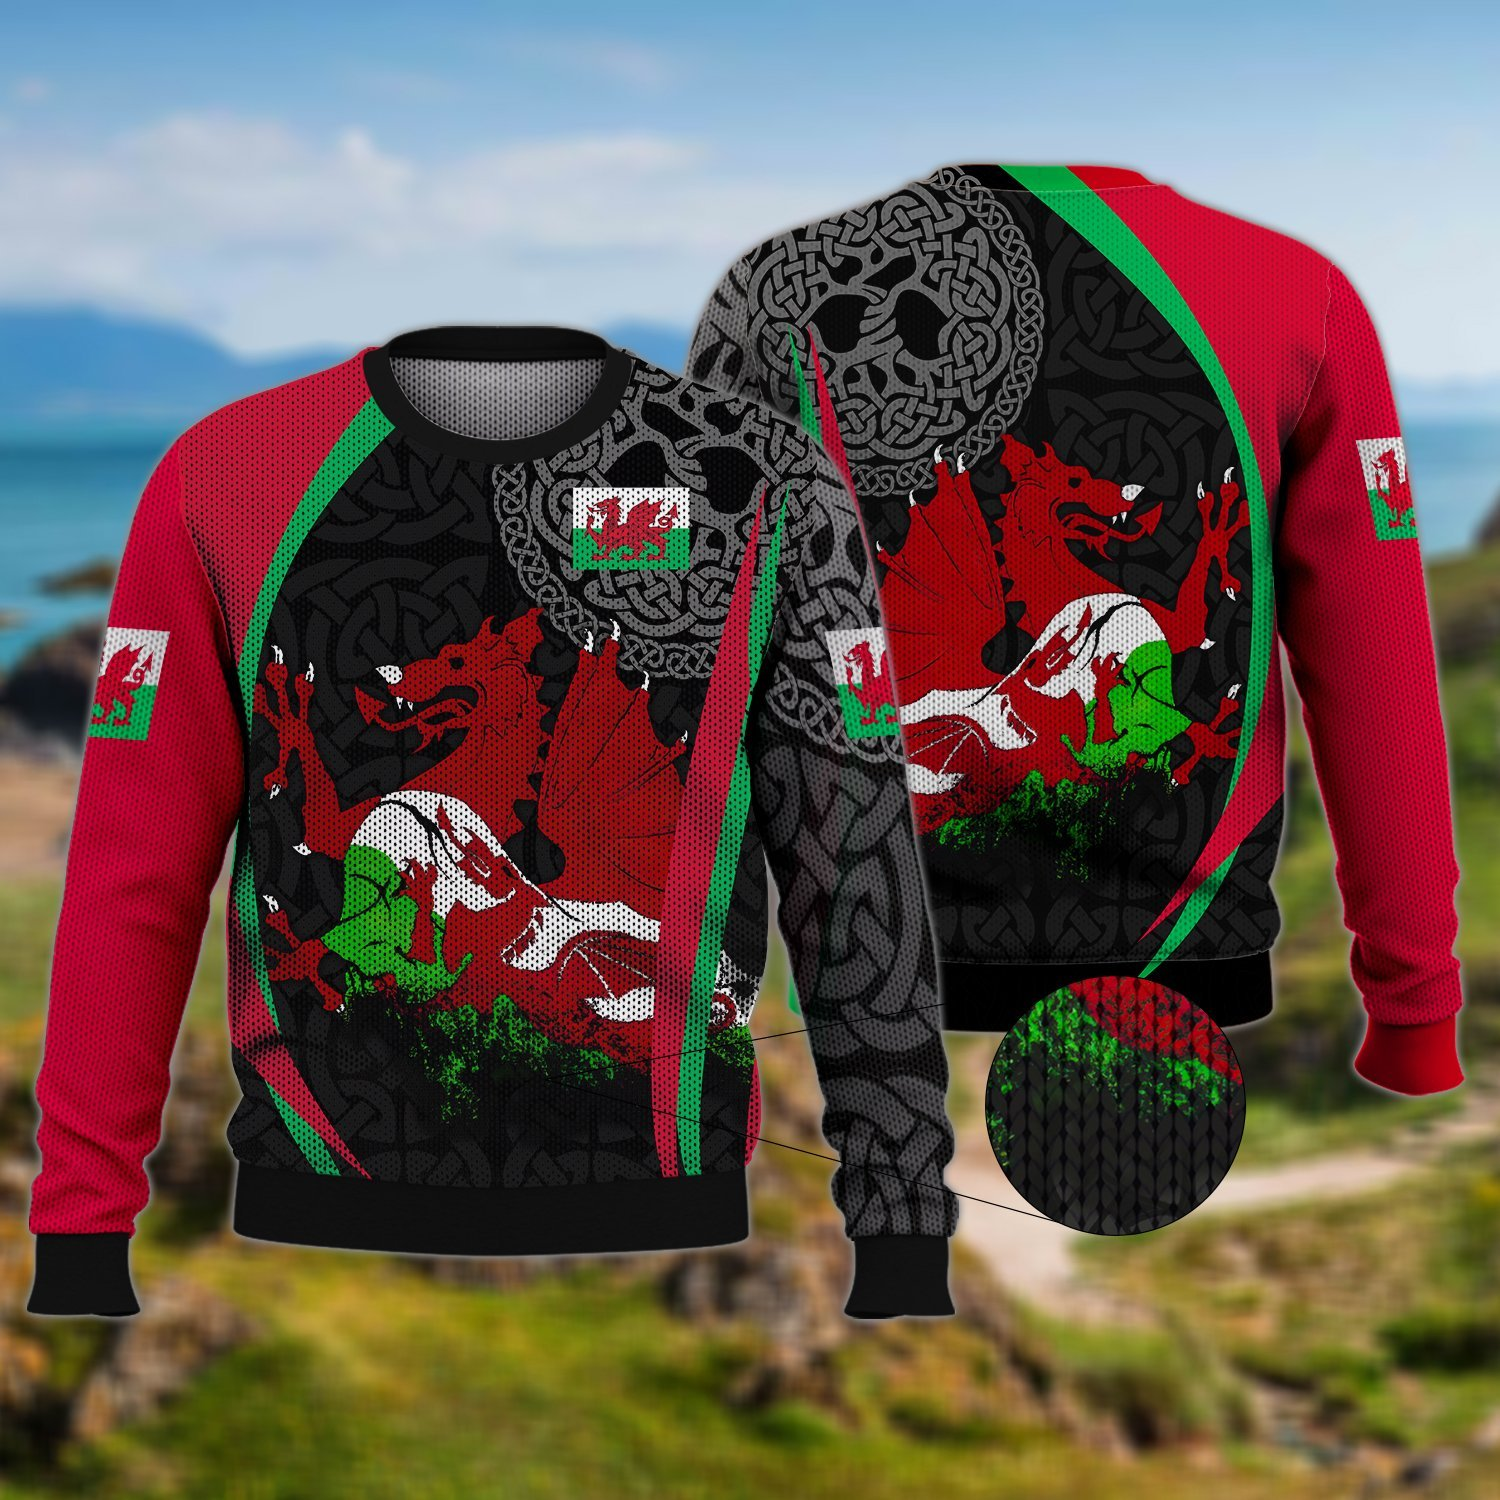 WALES RED DRAGON UGLY SWEATER